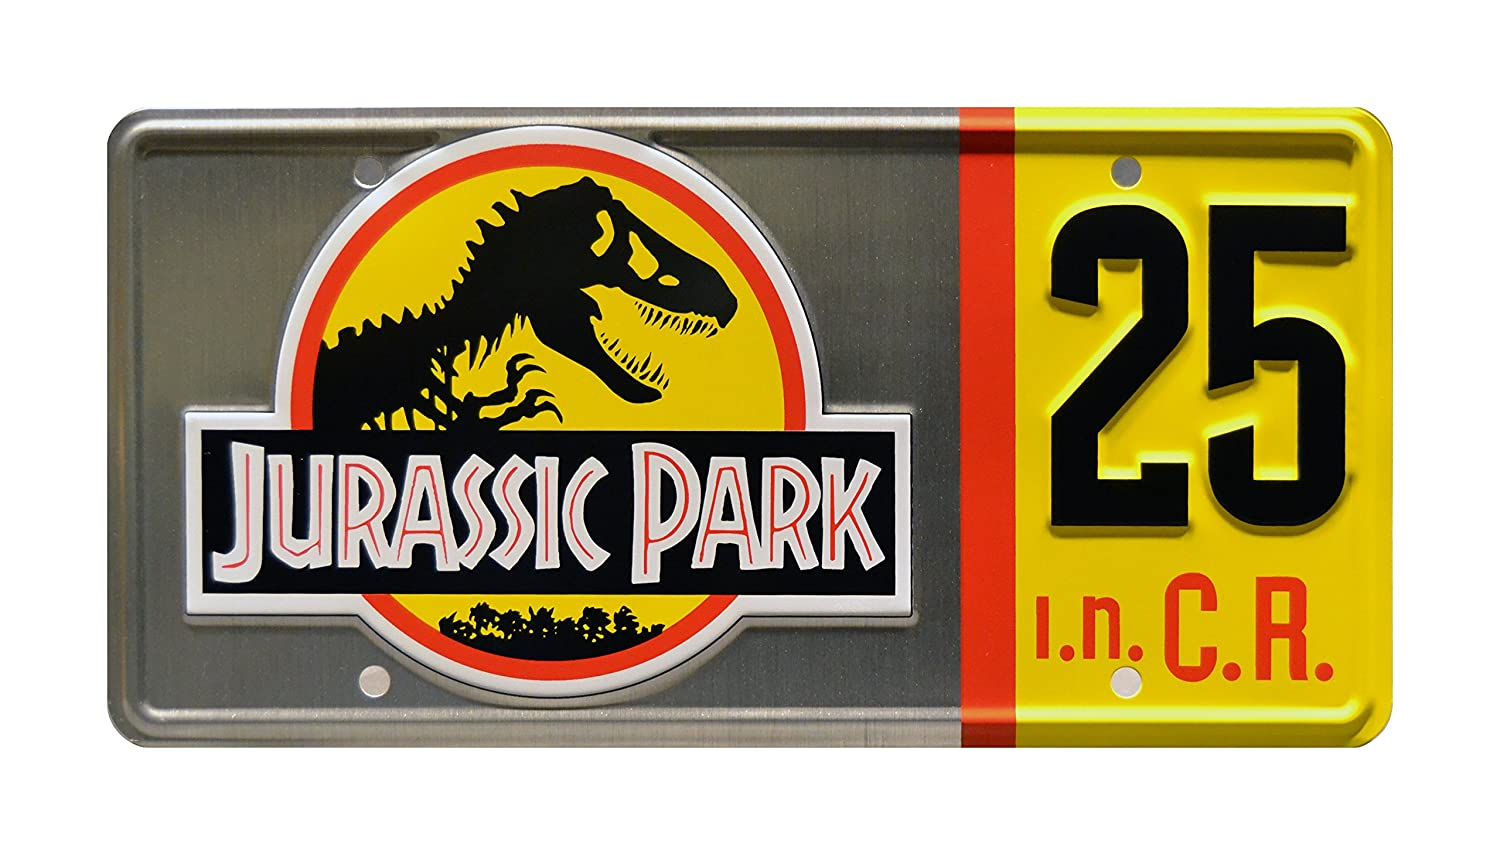 Jurassic Park | 25th Anniversary Silver Edition | Metal Stamped Vanity License Plate Celebrity Machines